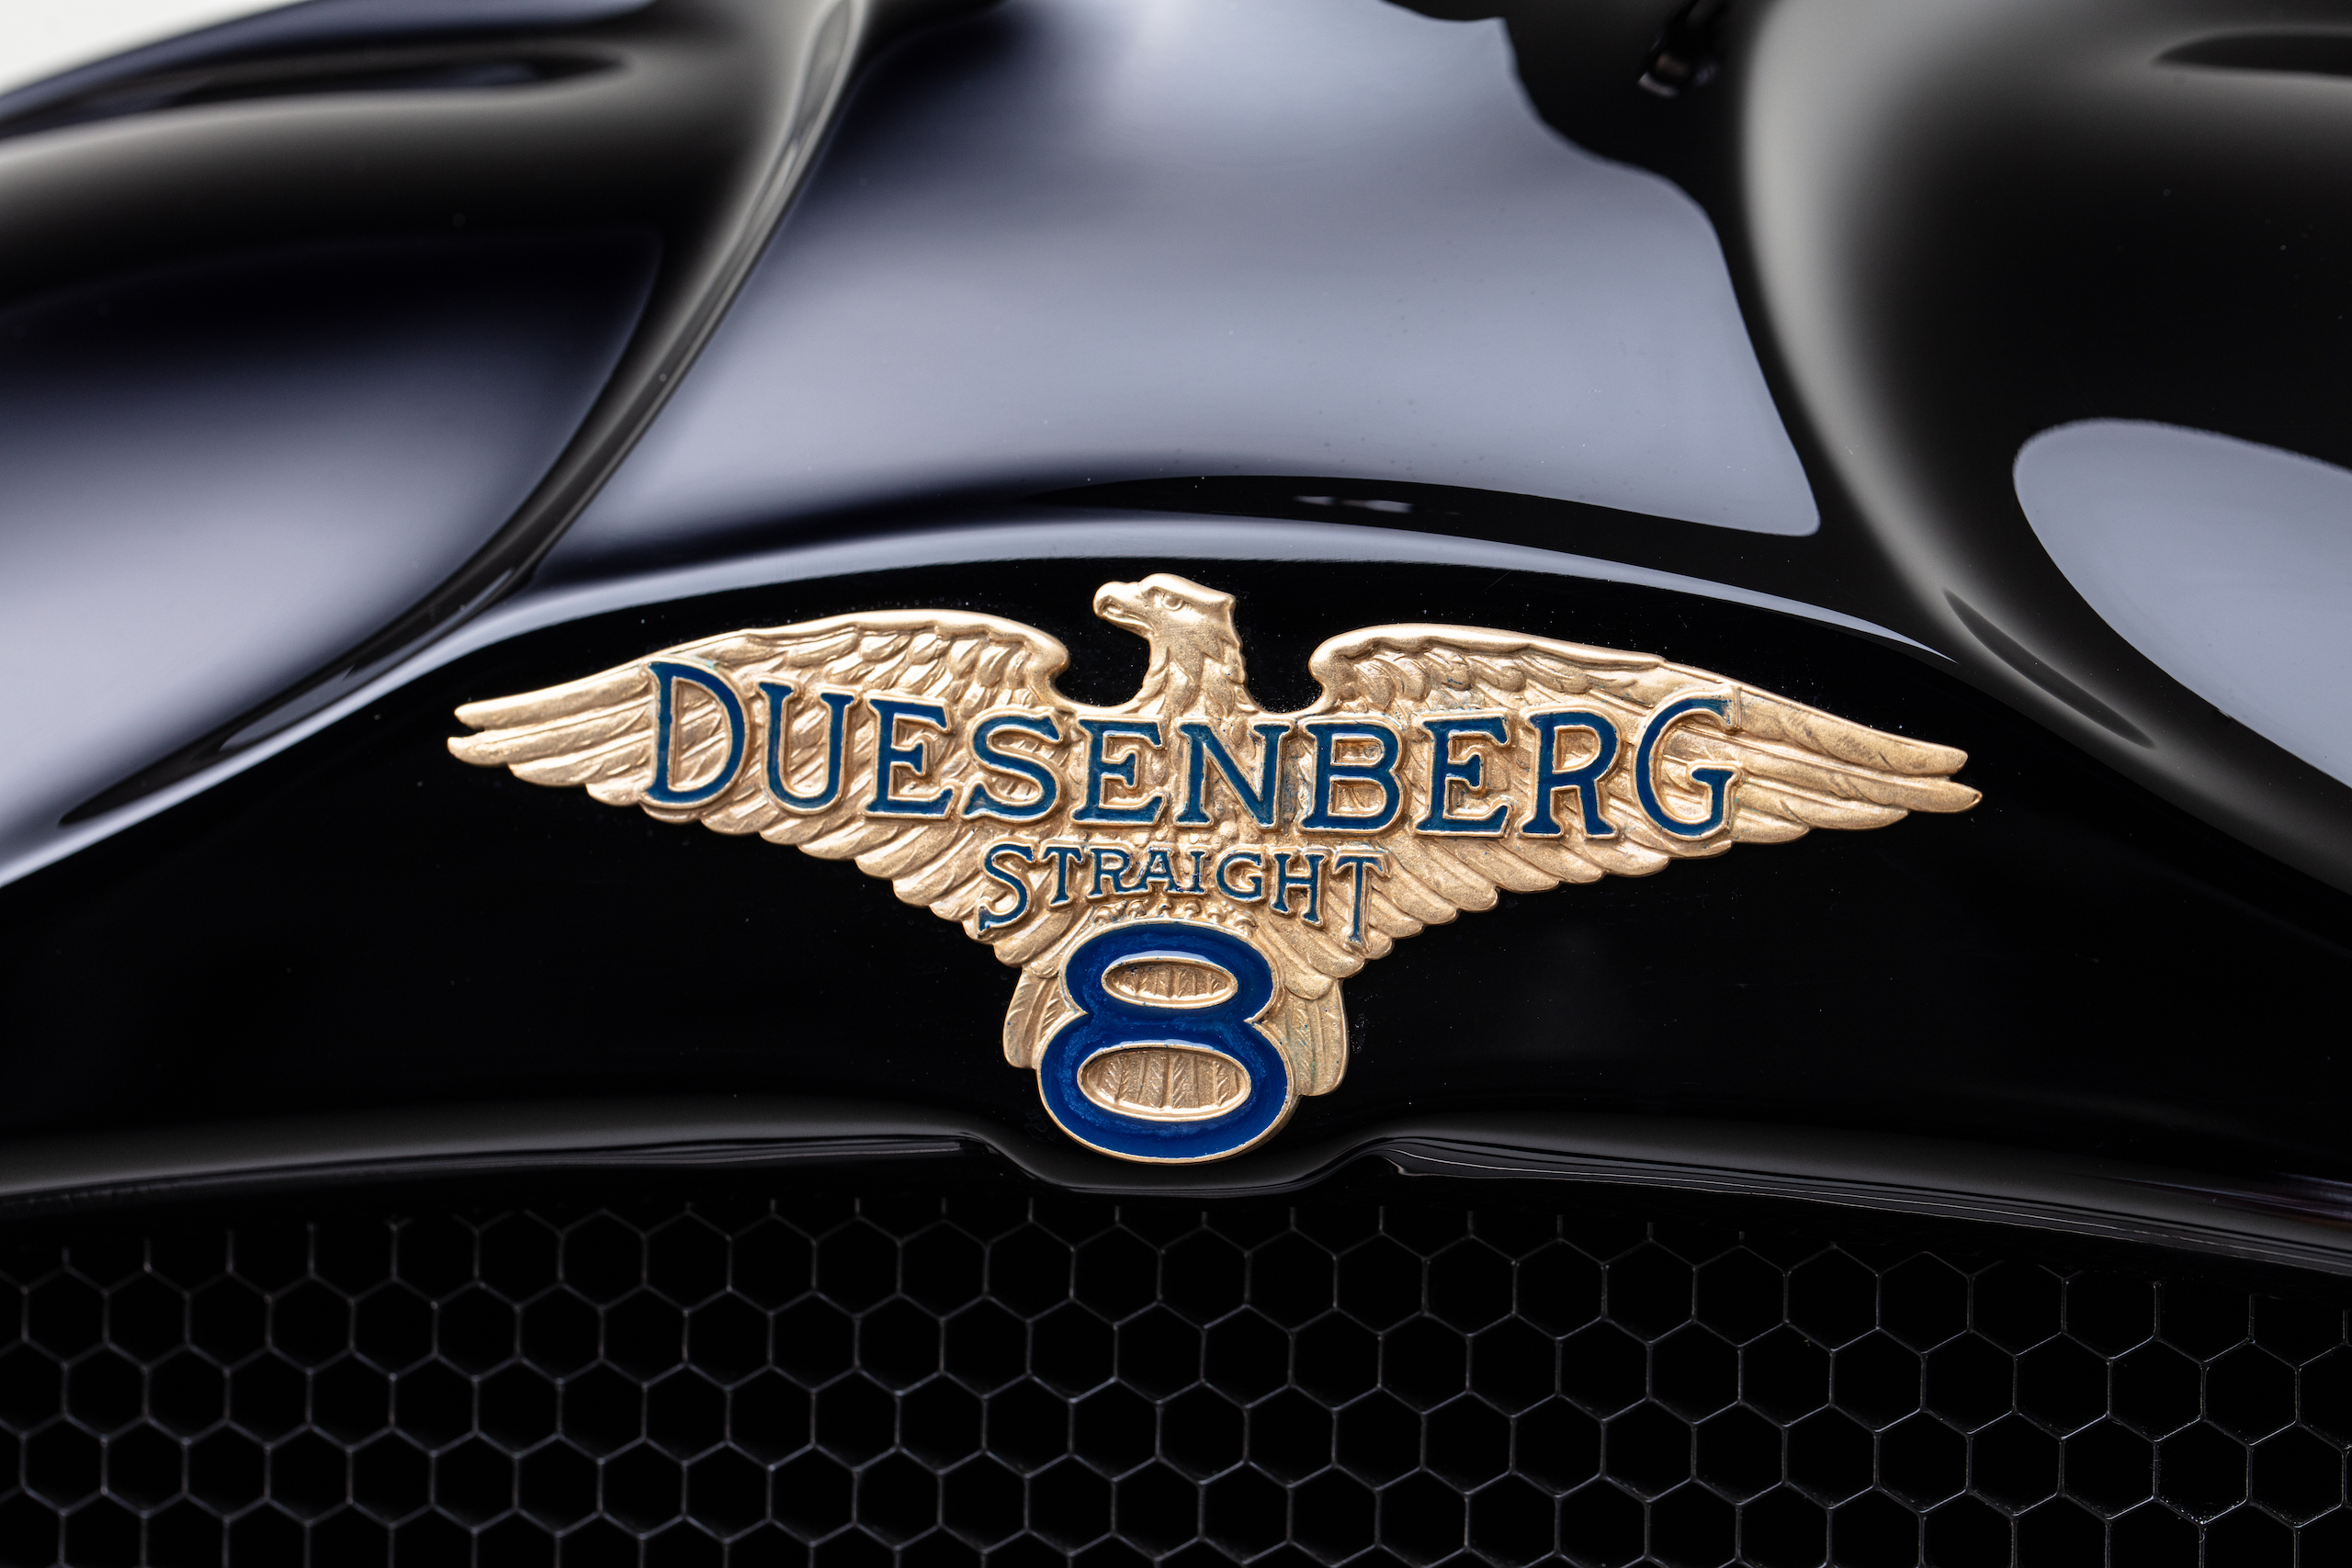 Duesenberg straight eight logo icon ornament close